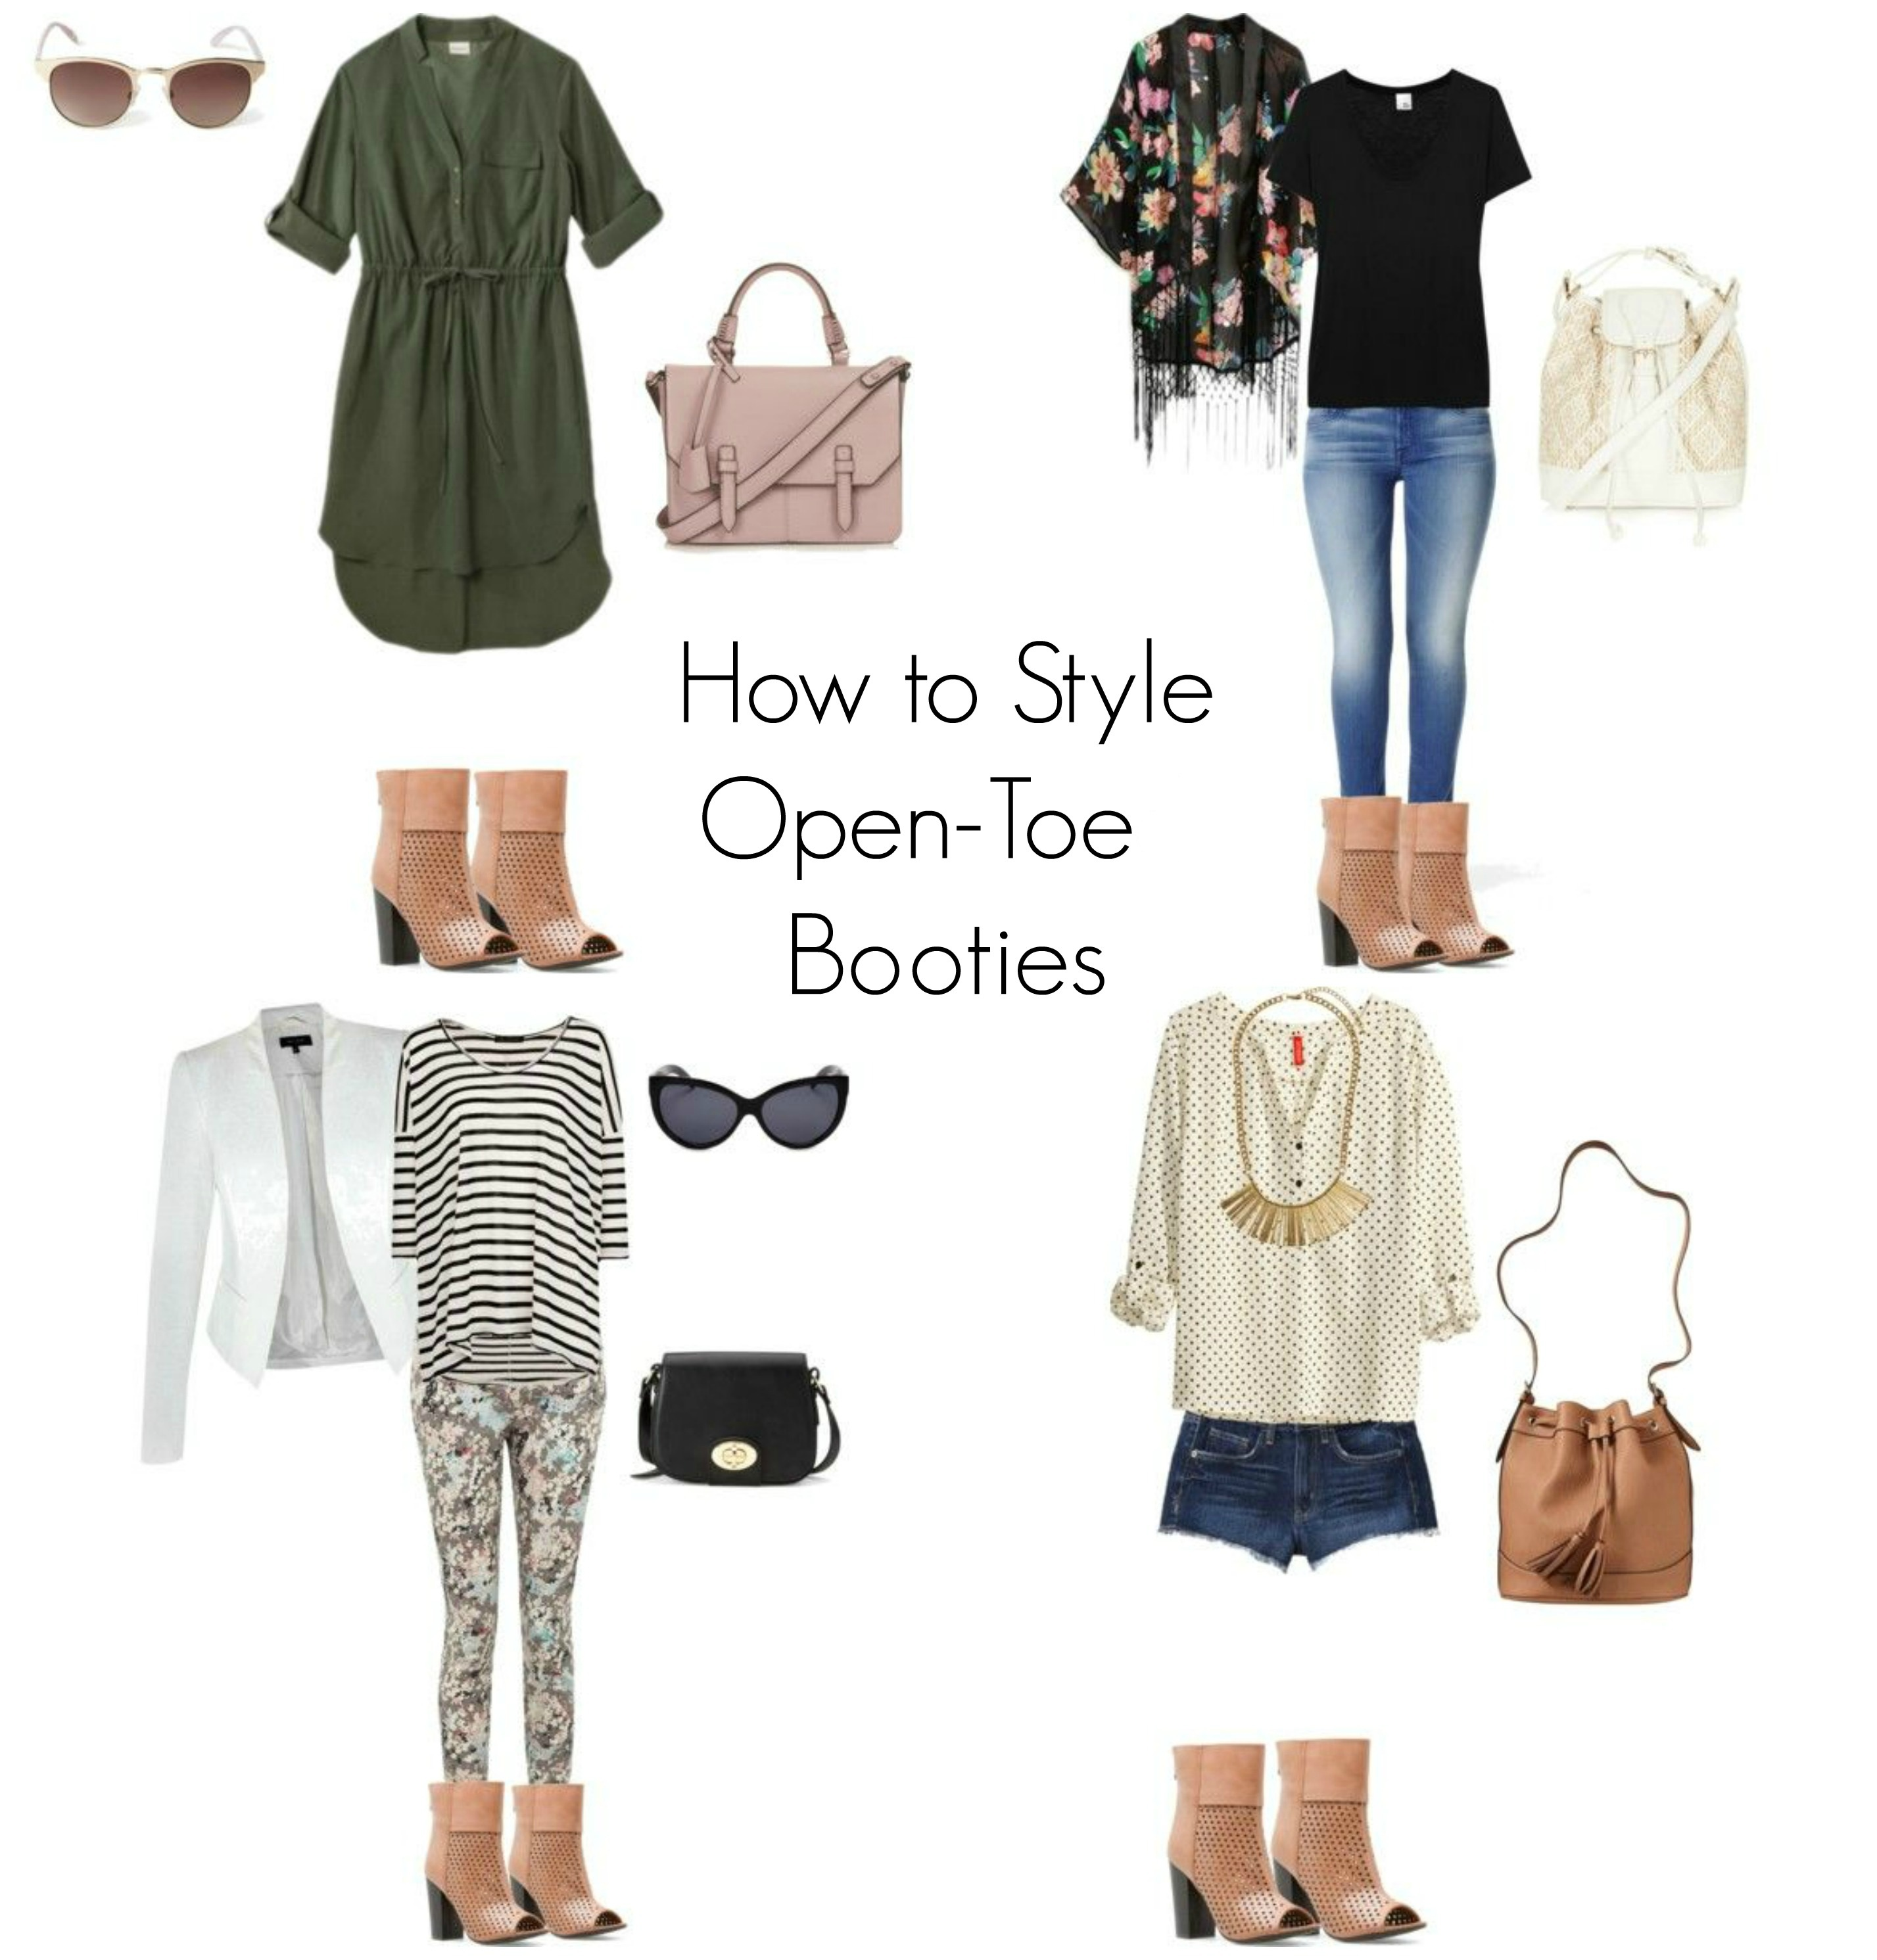 How to Style Open-Toe Booties